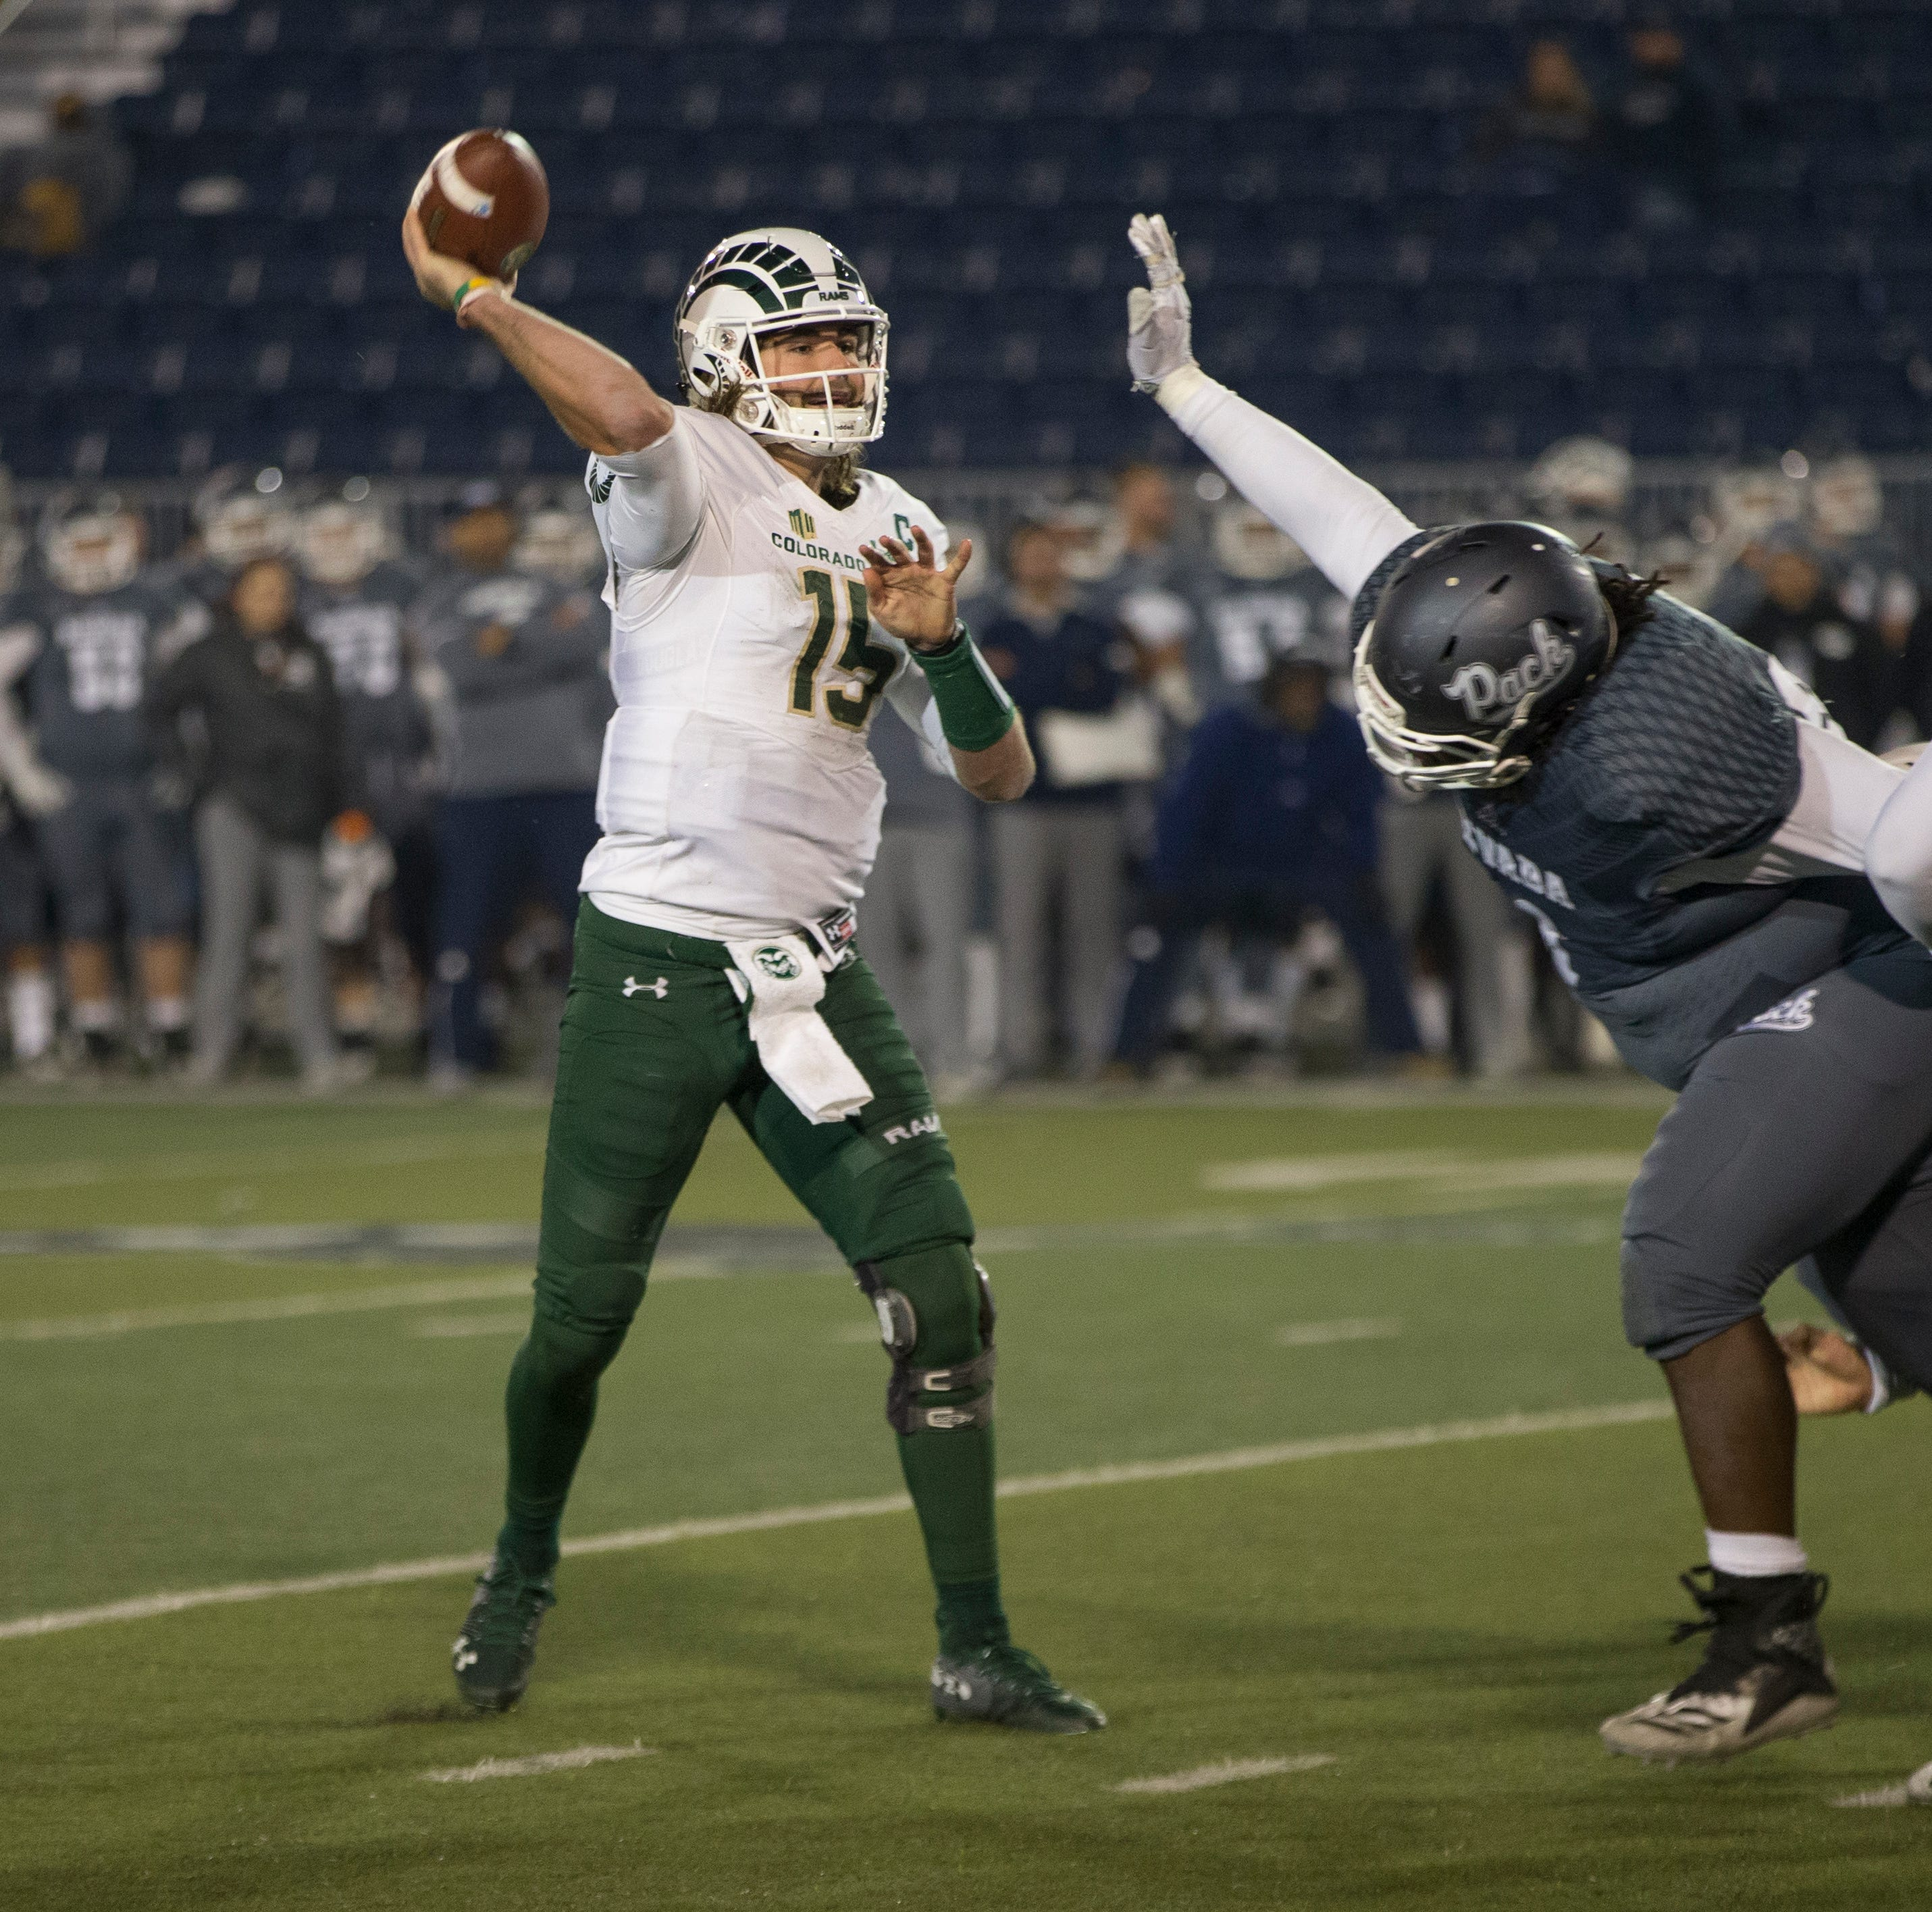 How to watch Utah State at CSU football on TV and online